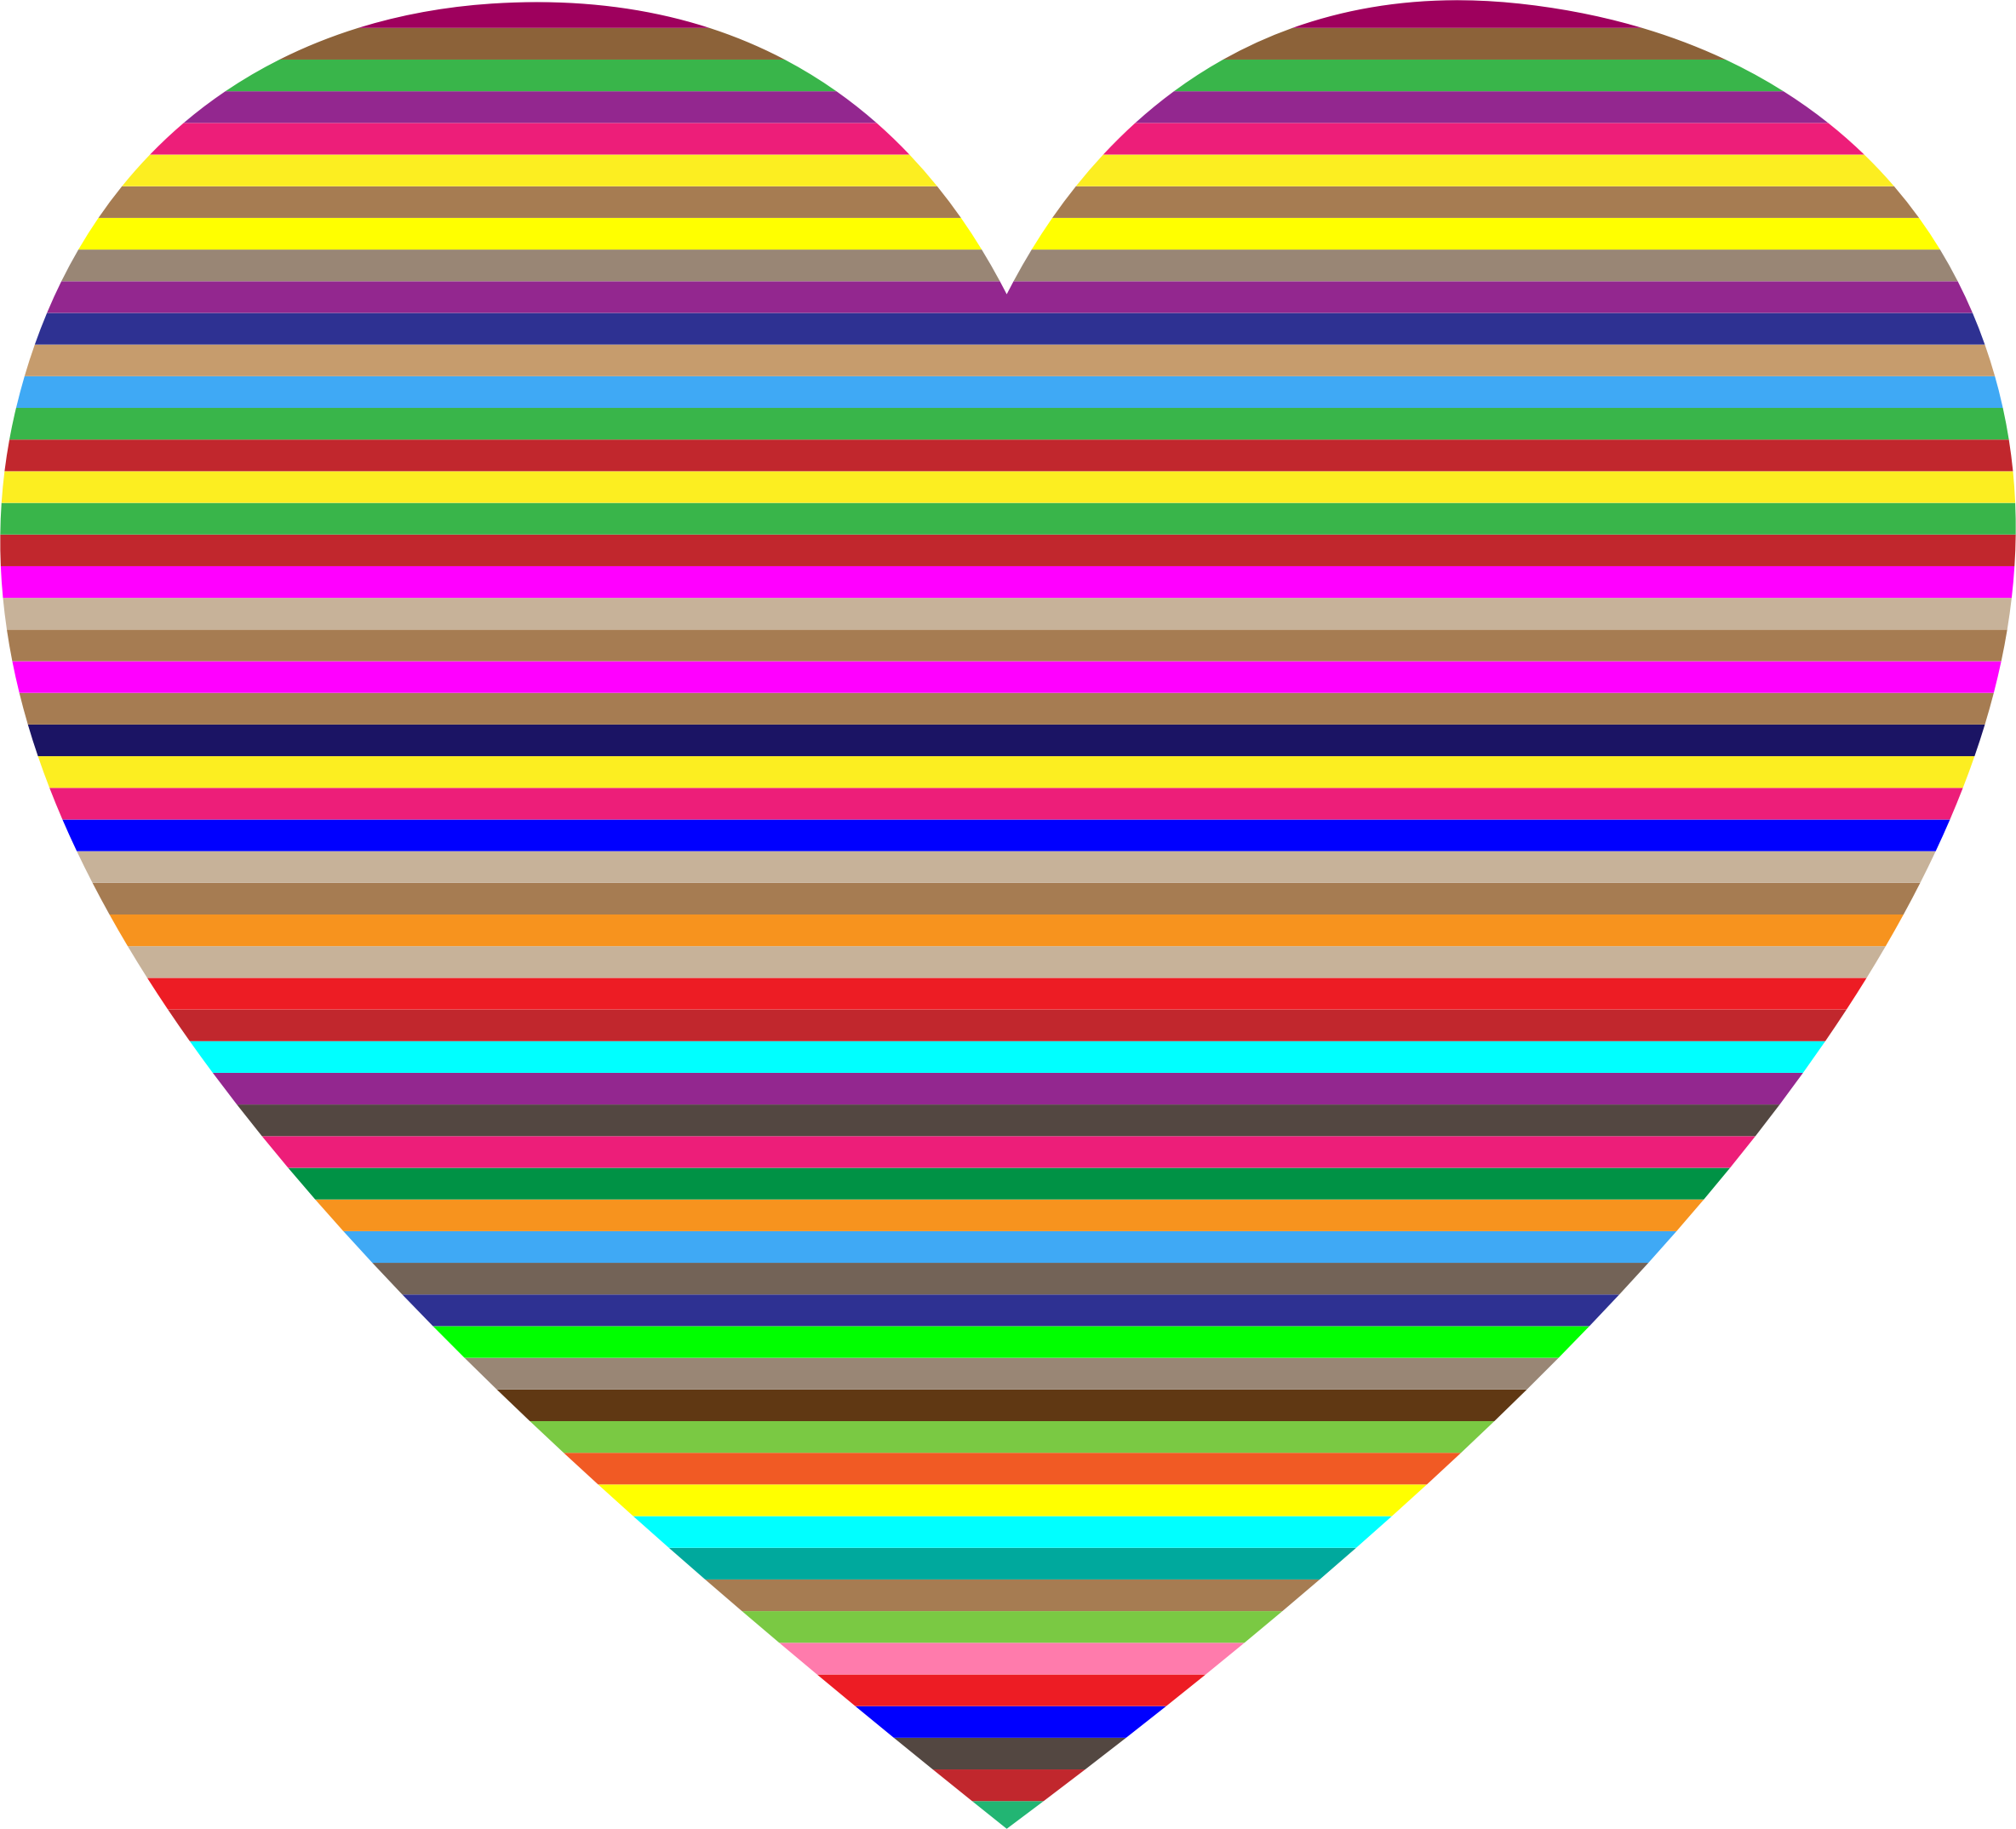 Heat clipart valentines day heart. Colorful horizontal striped big